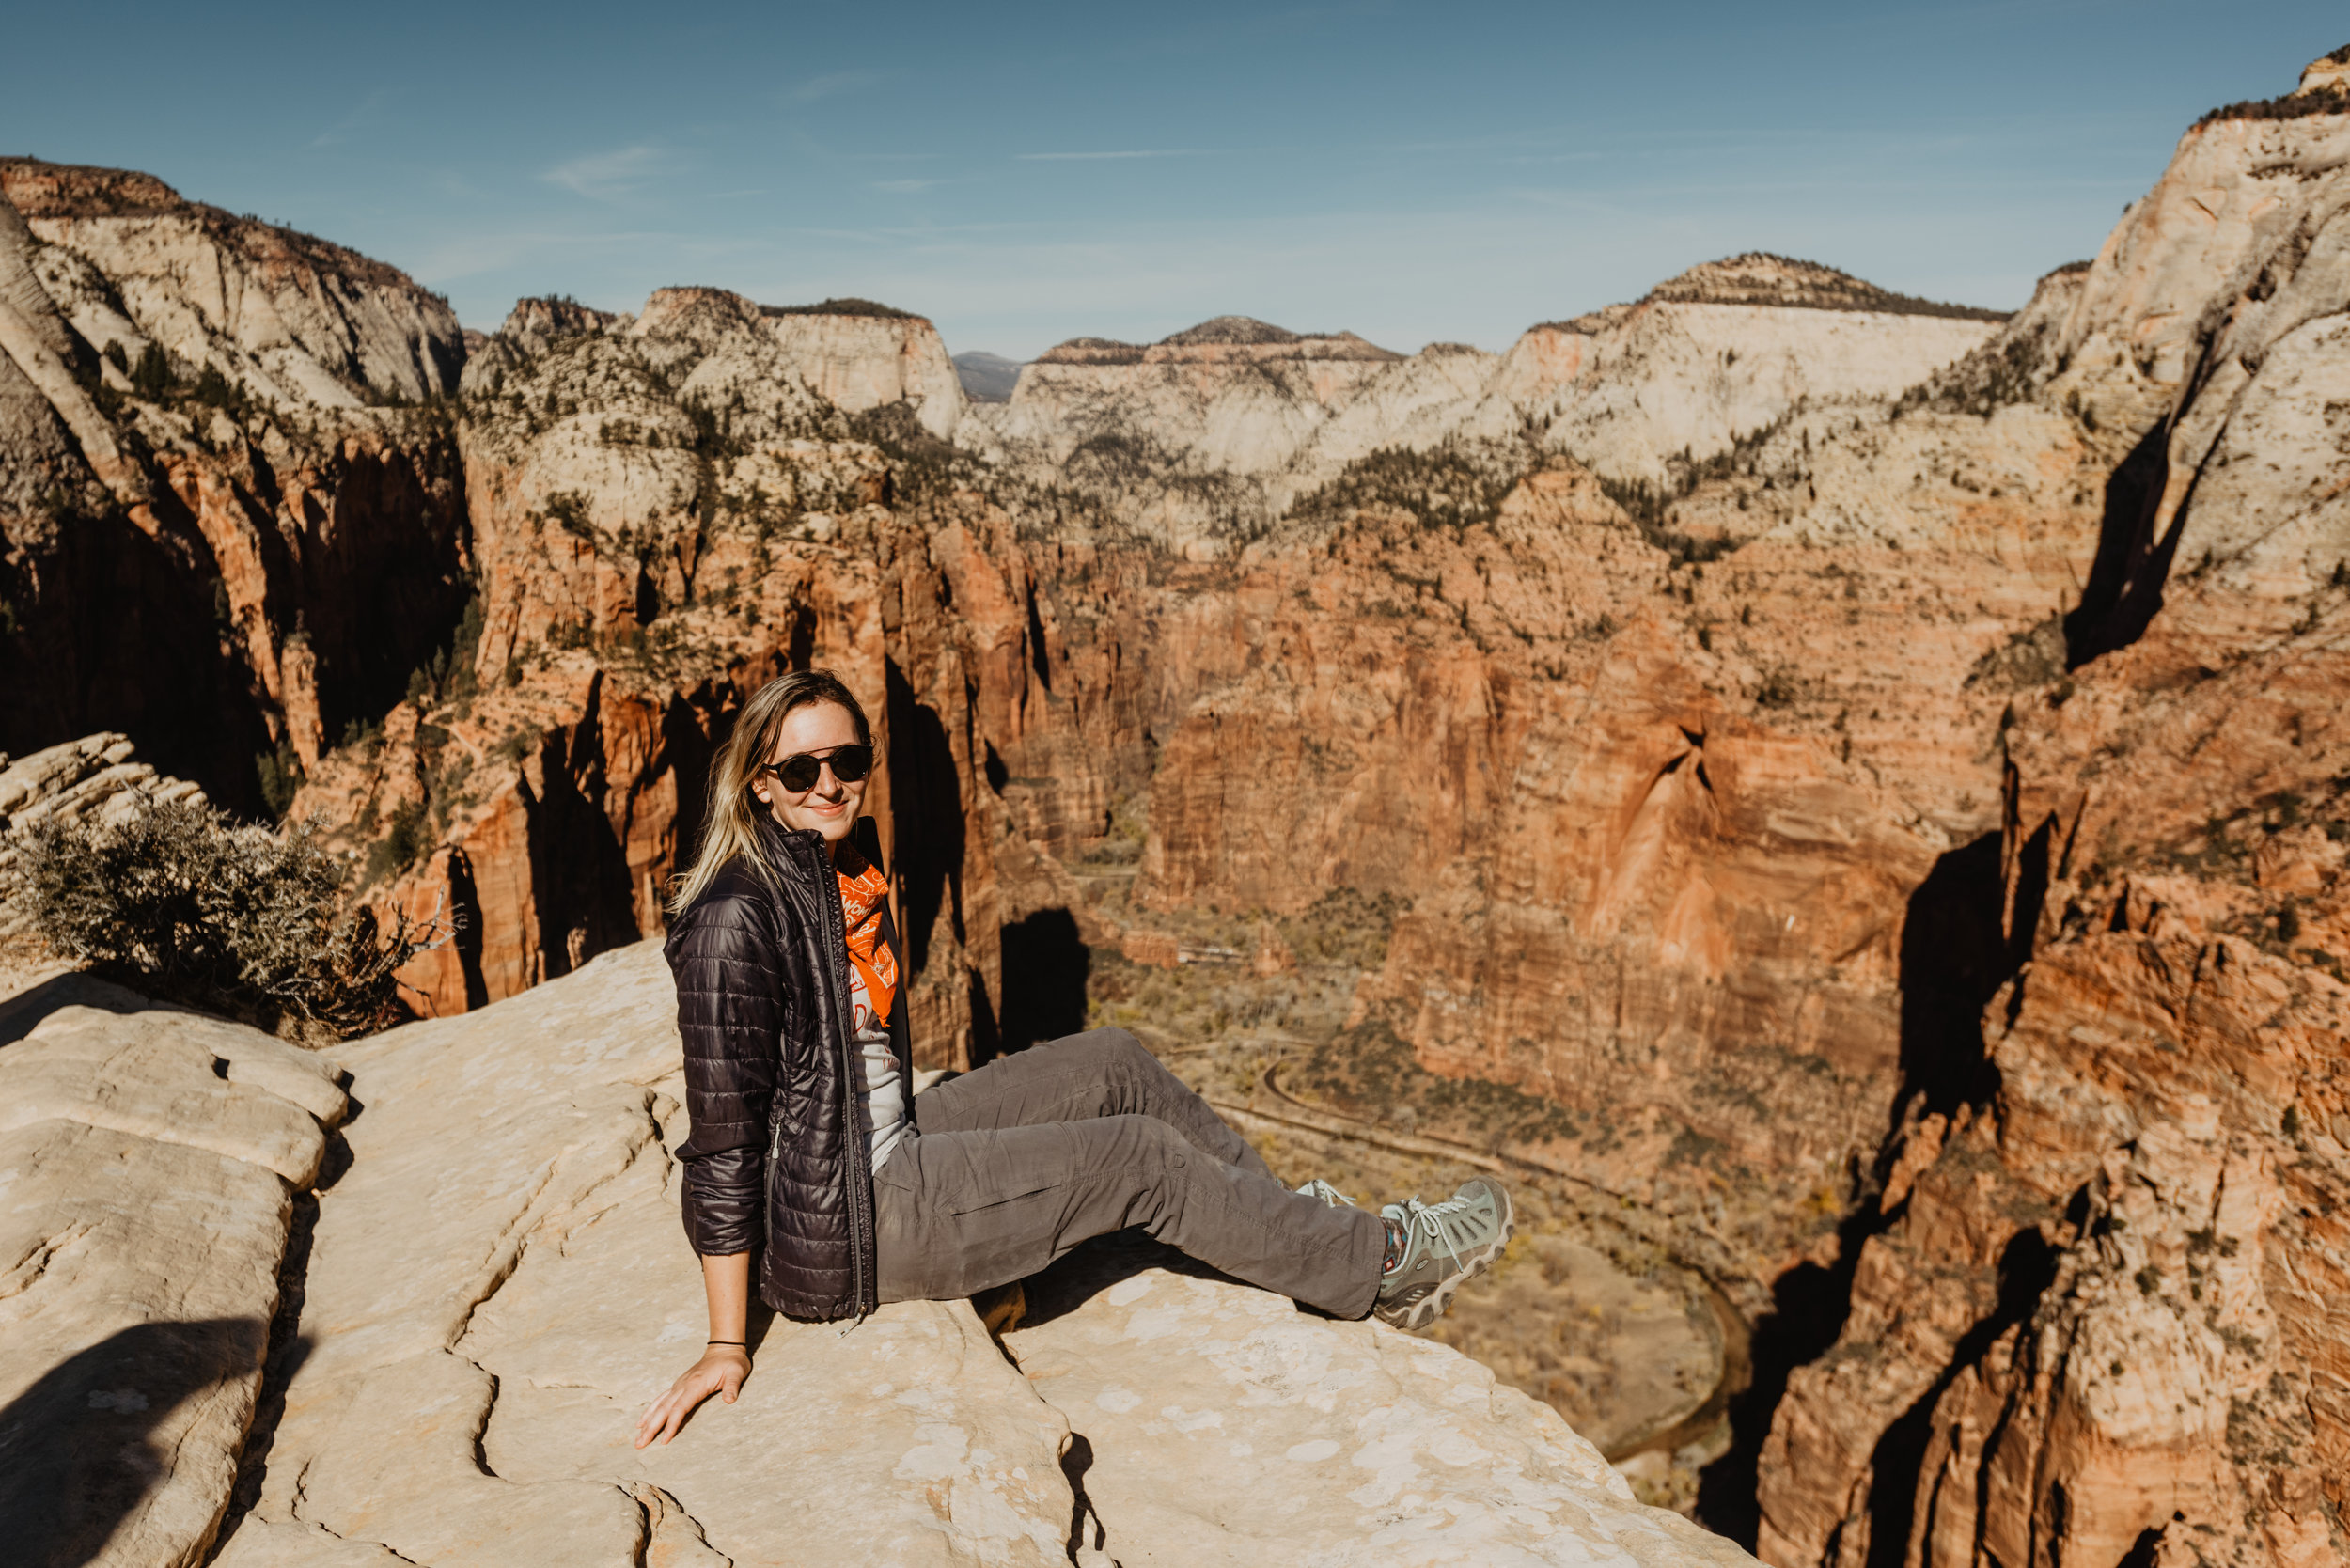 Hey it's me here! - I am here to tell you that Winter is still a perfect time of year for your elopement, just check out all of these desert locations!! I recently ventured off to Zion and Bryce Canyon National Parks to hike Angel's Landing and check out other trails for elopements. I was so excited to see this little spot in Bryce that is perfect for a ceremony if you plan to bring a couple of very important people along to witness the vows. Bryce and Zion are still great elopement locations for a winter elopement, the nights are quiet cold, but the day can be warm. Depending on the day you can catch snow in Bryce, which means cold, yes, but BEAUTIFUL! Tis' the season right??Heading more South into Arizona, you have Sedona, Grand Canyon, Tuscon and Petrified Forest National Park as great locations during the winter. If you do want snow but not those negative numbers you may get in other states or countries this time of year then Flagstaff and Payson are perfect options. Heading to Southern California I also recommend Joshua Tree for the winter. Once again it can get cold during the night, but after a perfect day who doesn't want to cuddle up in a cozy Airbnb?